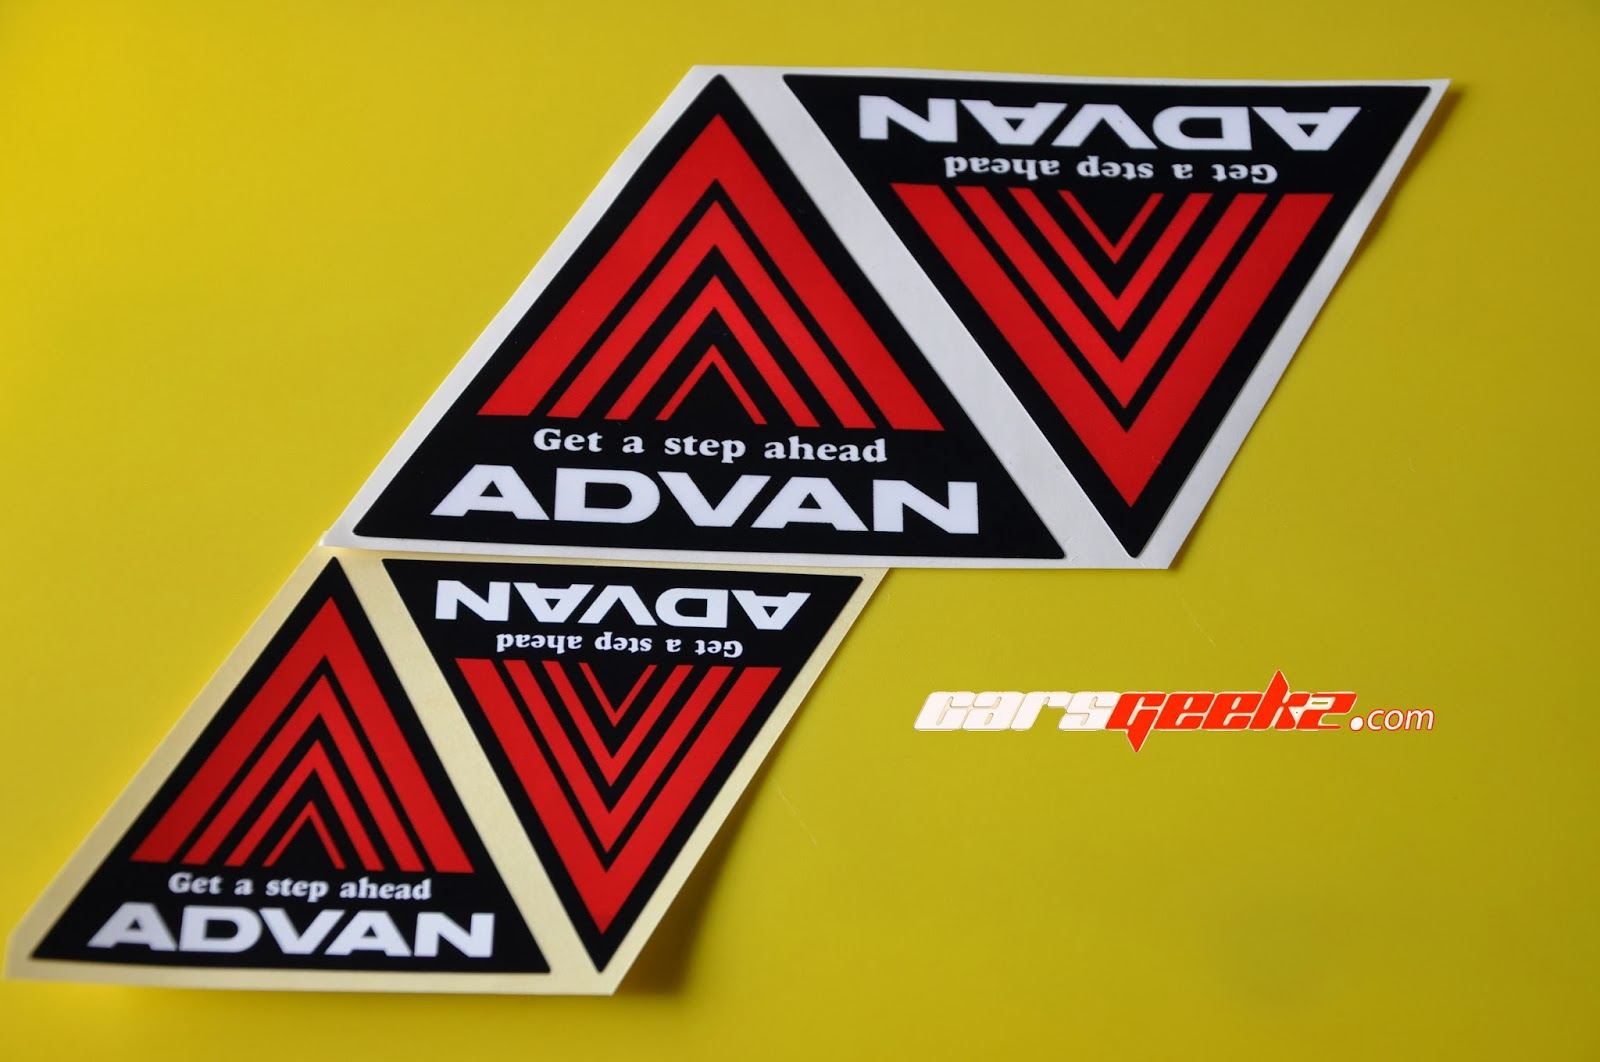 Advan - Get a step ahead sticker